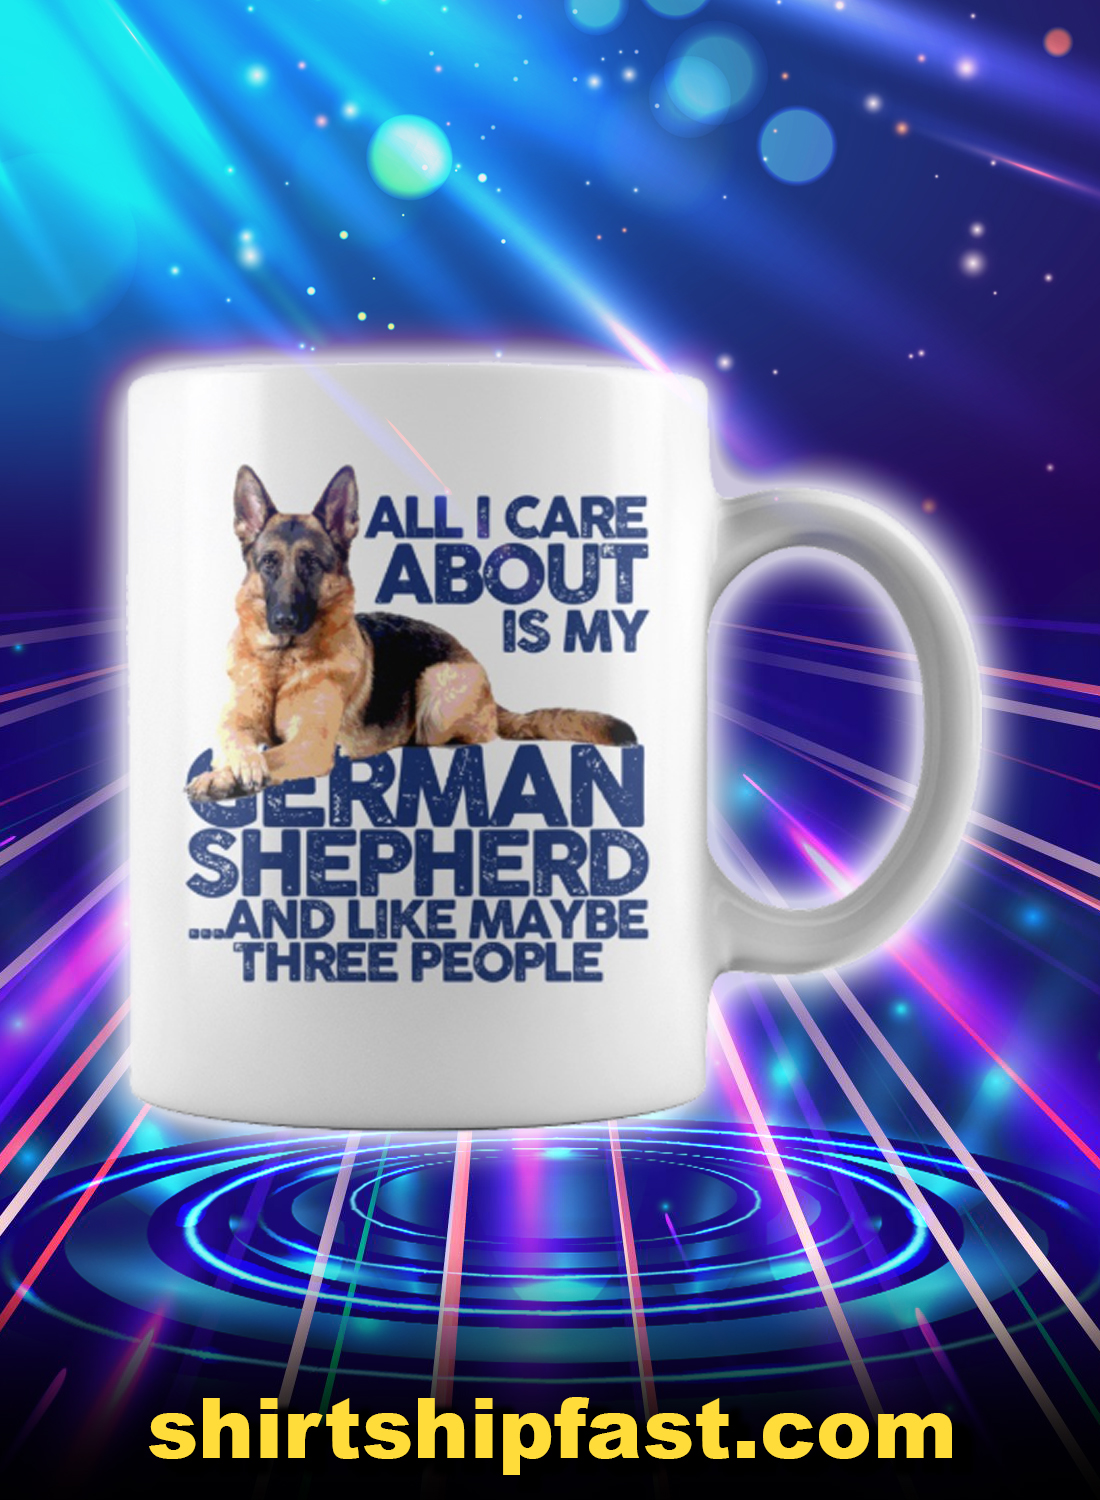 All i care about is my german shepherd and like maybe three people mug